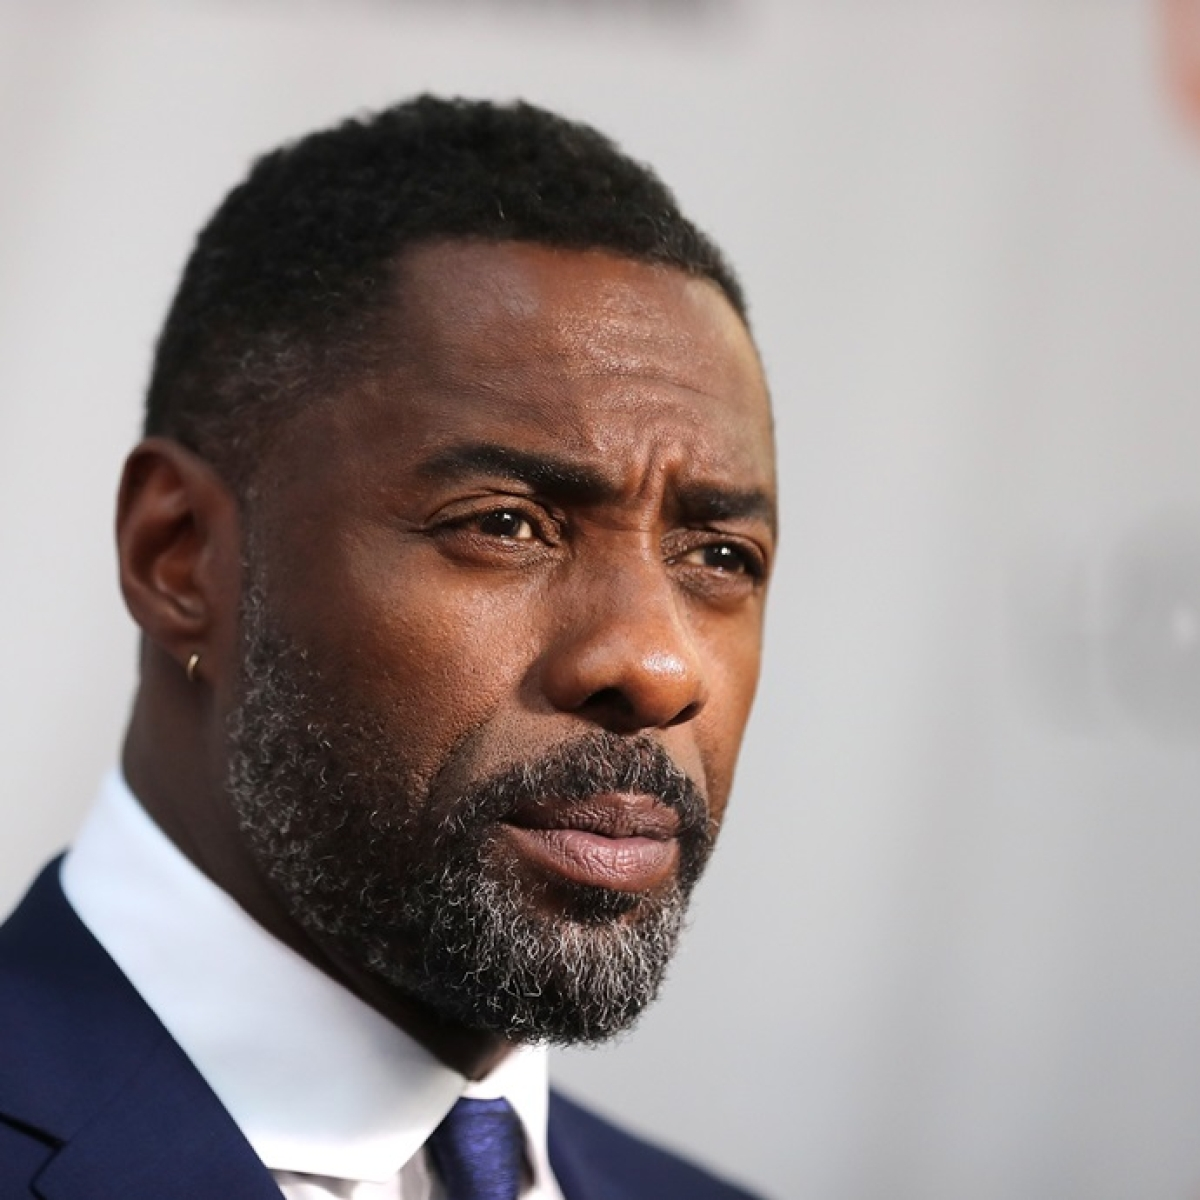 'Stay home people and be pragmatic': Idris Elba tests positive for coronavirus